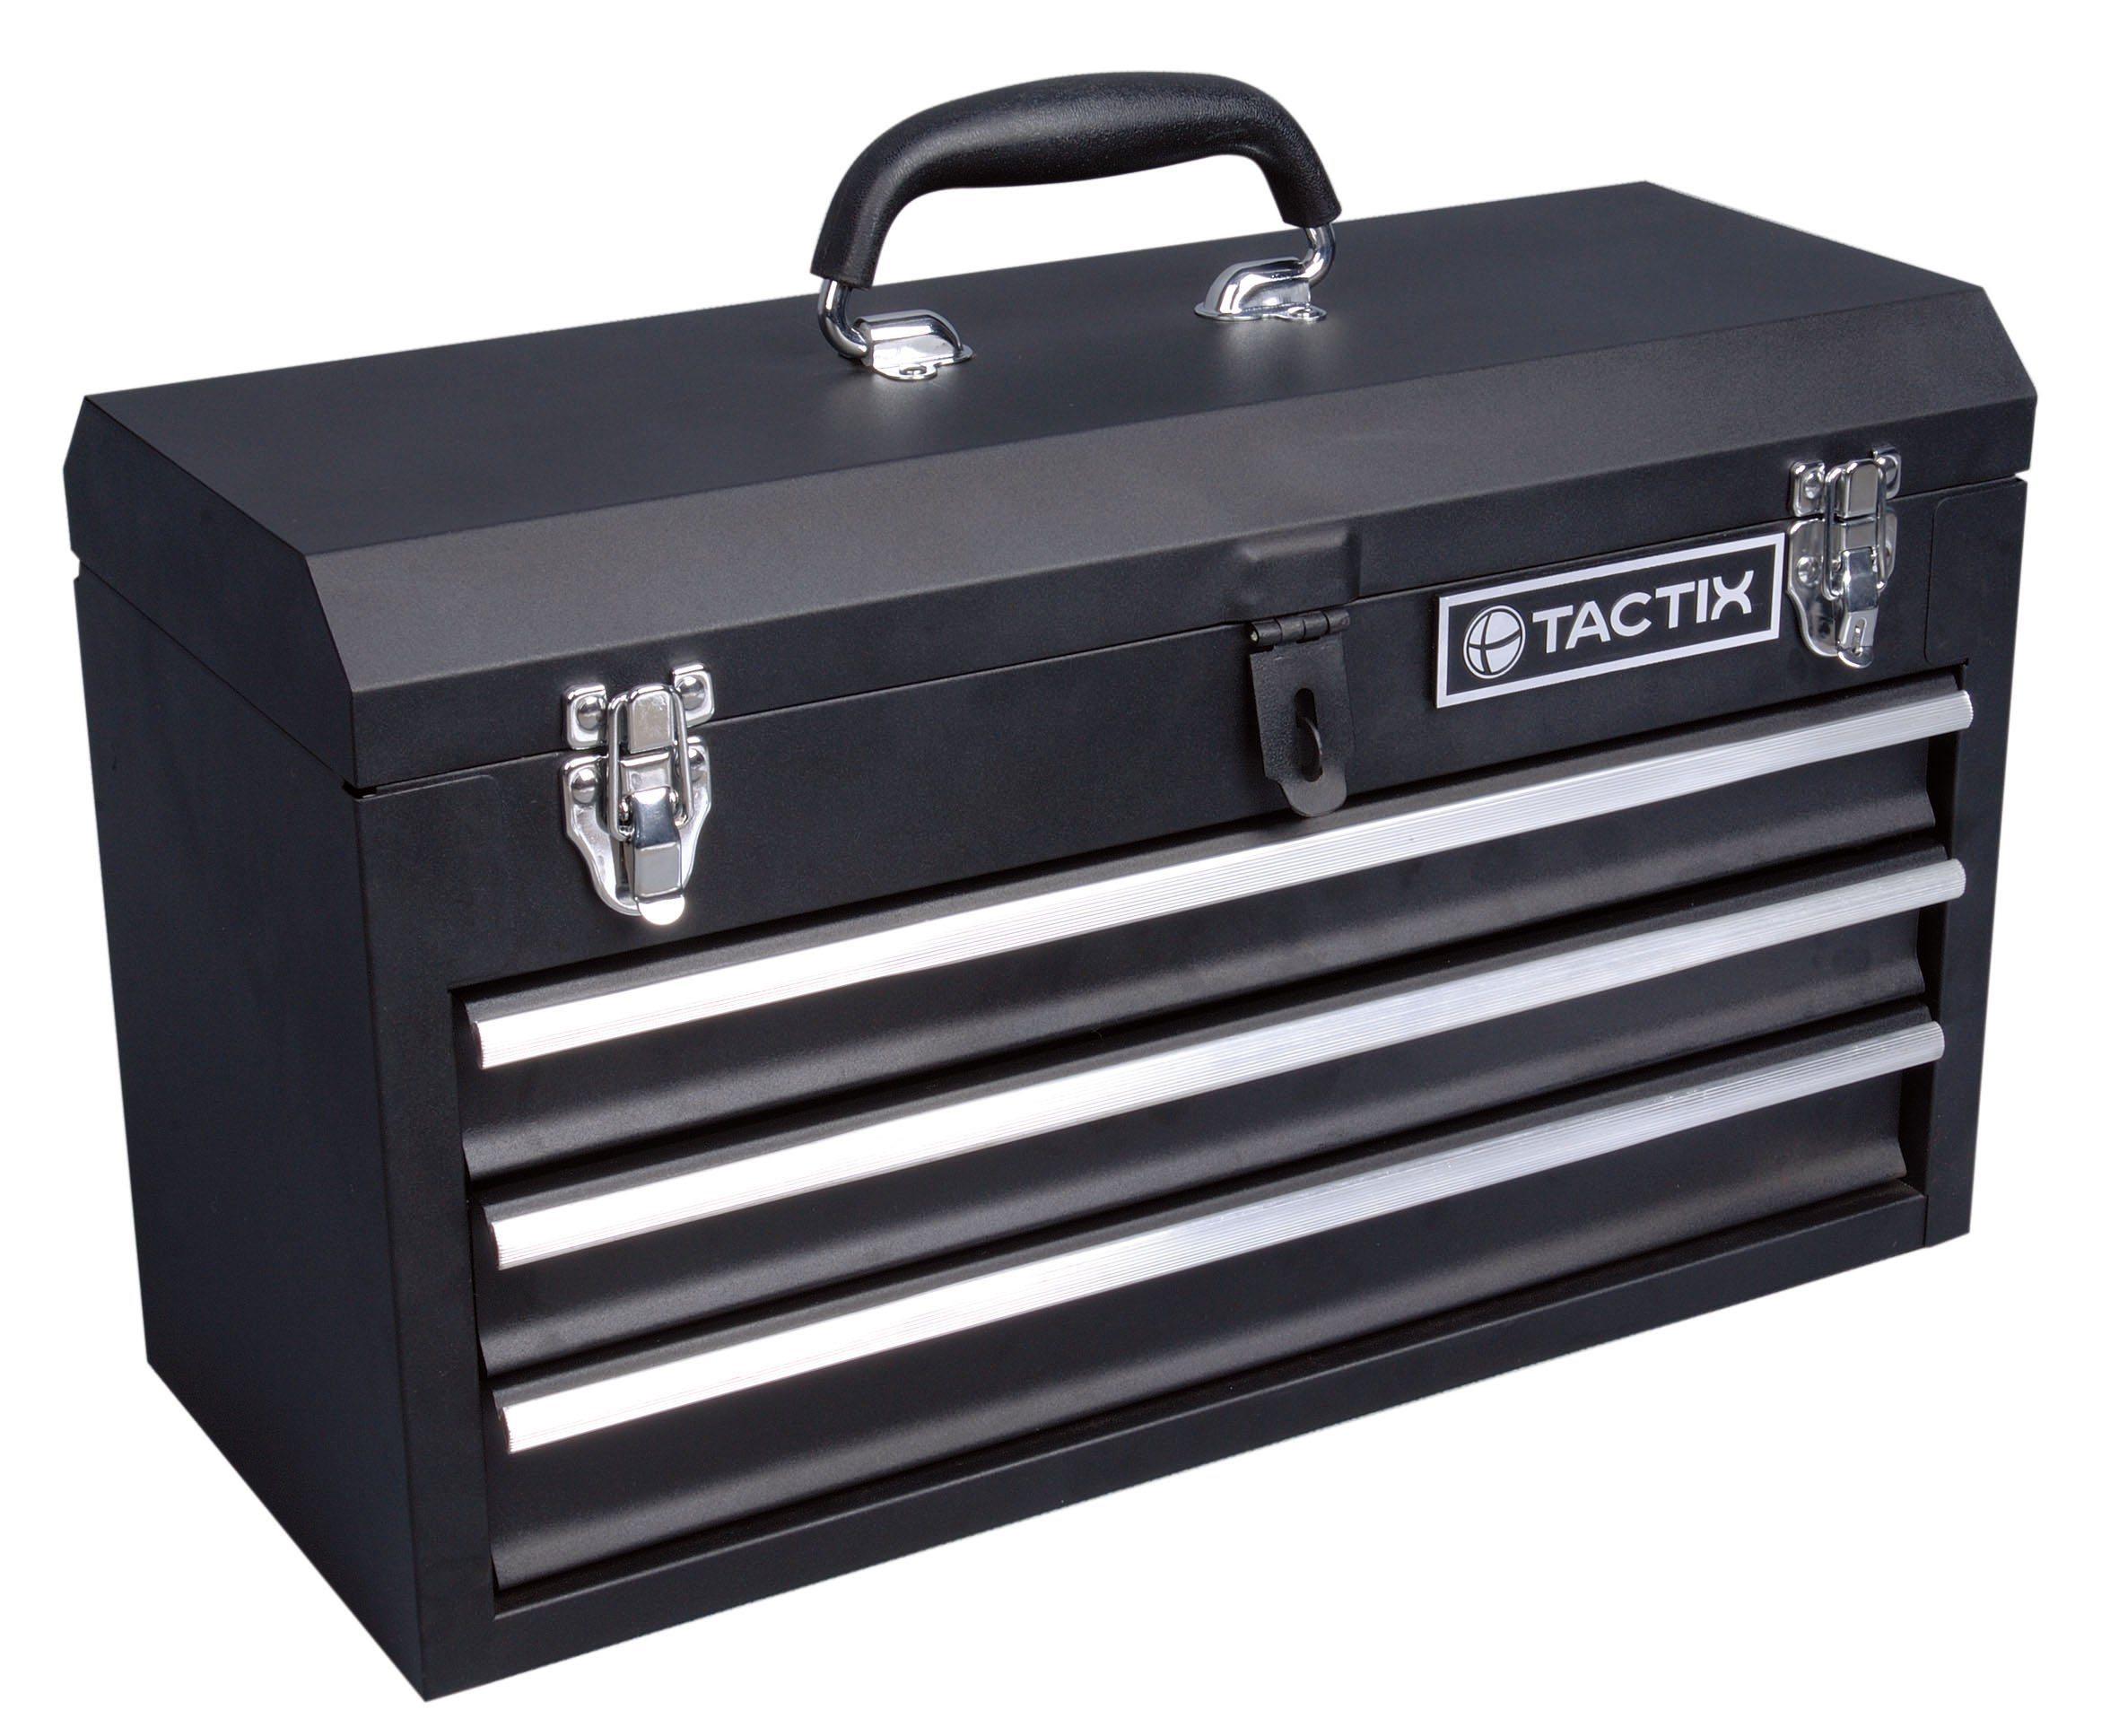 Tactix 321102 3 Drawer Steel Portable Tool Box, 52cm